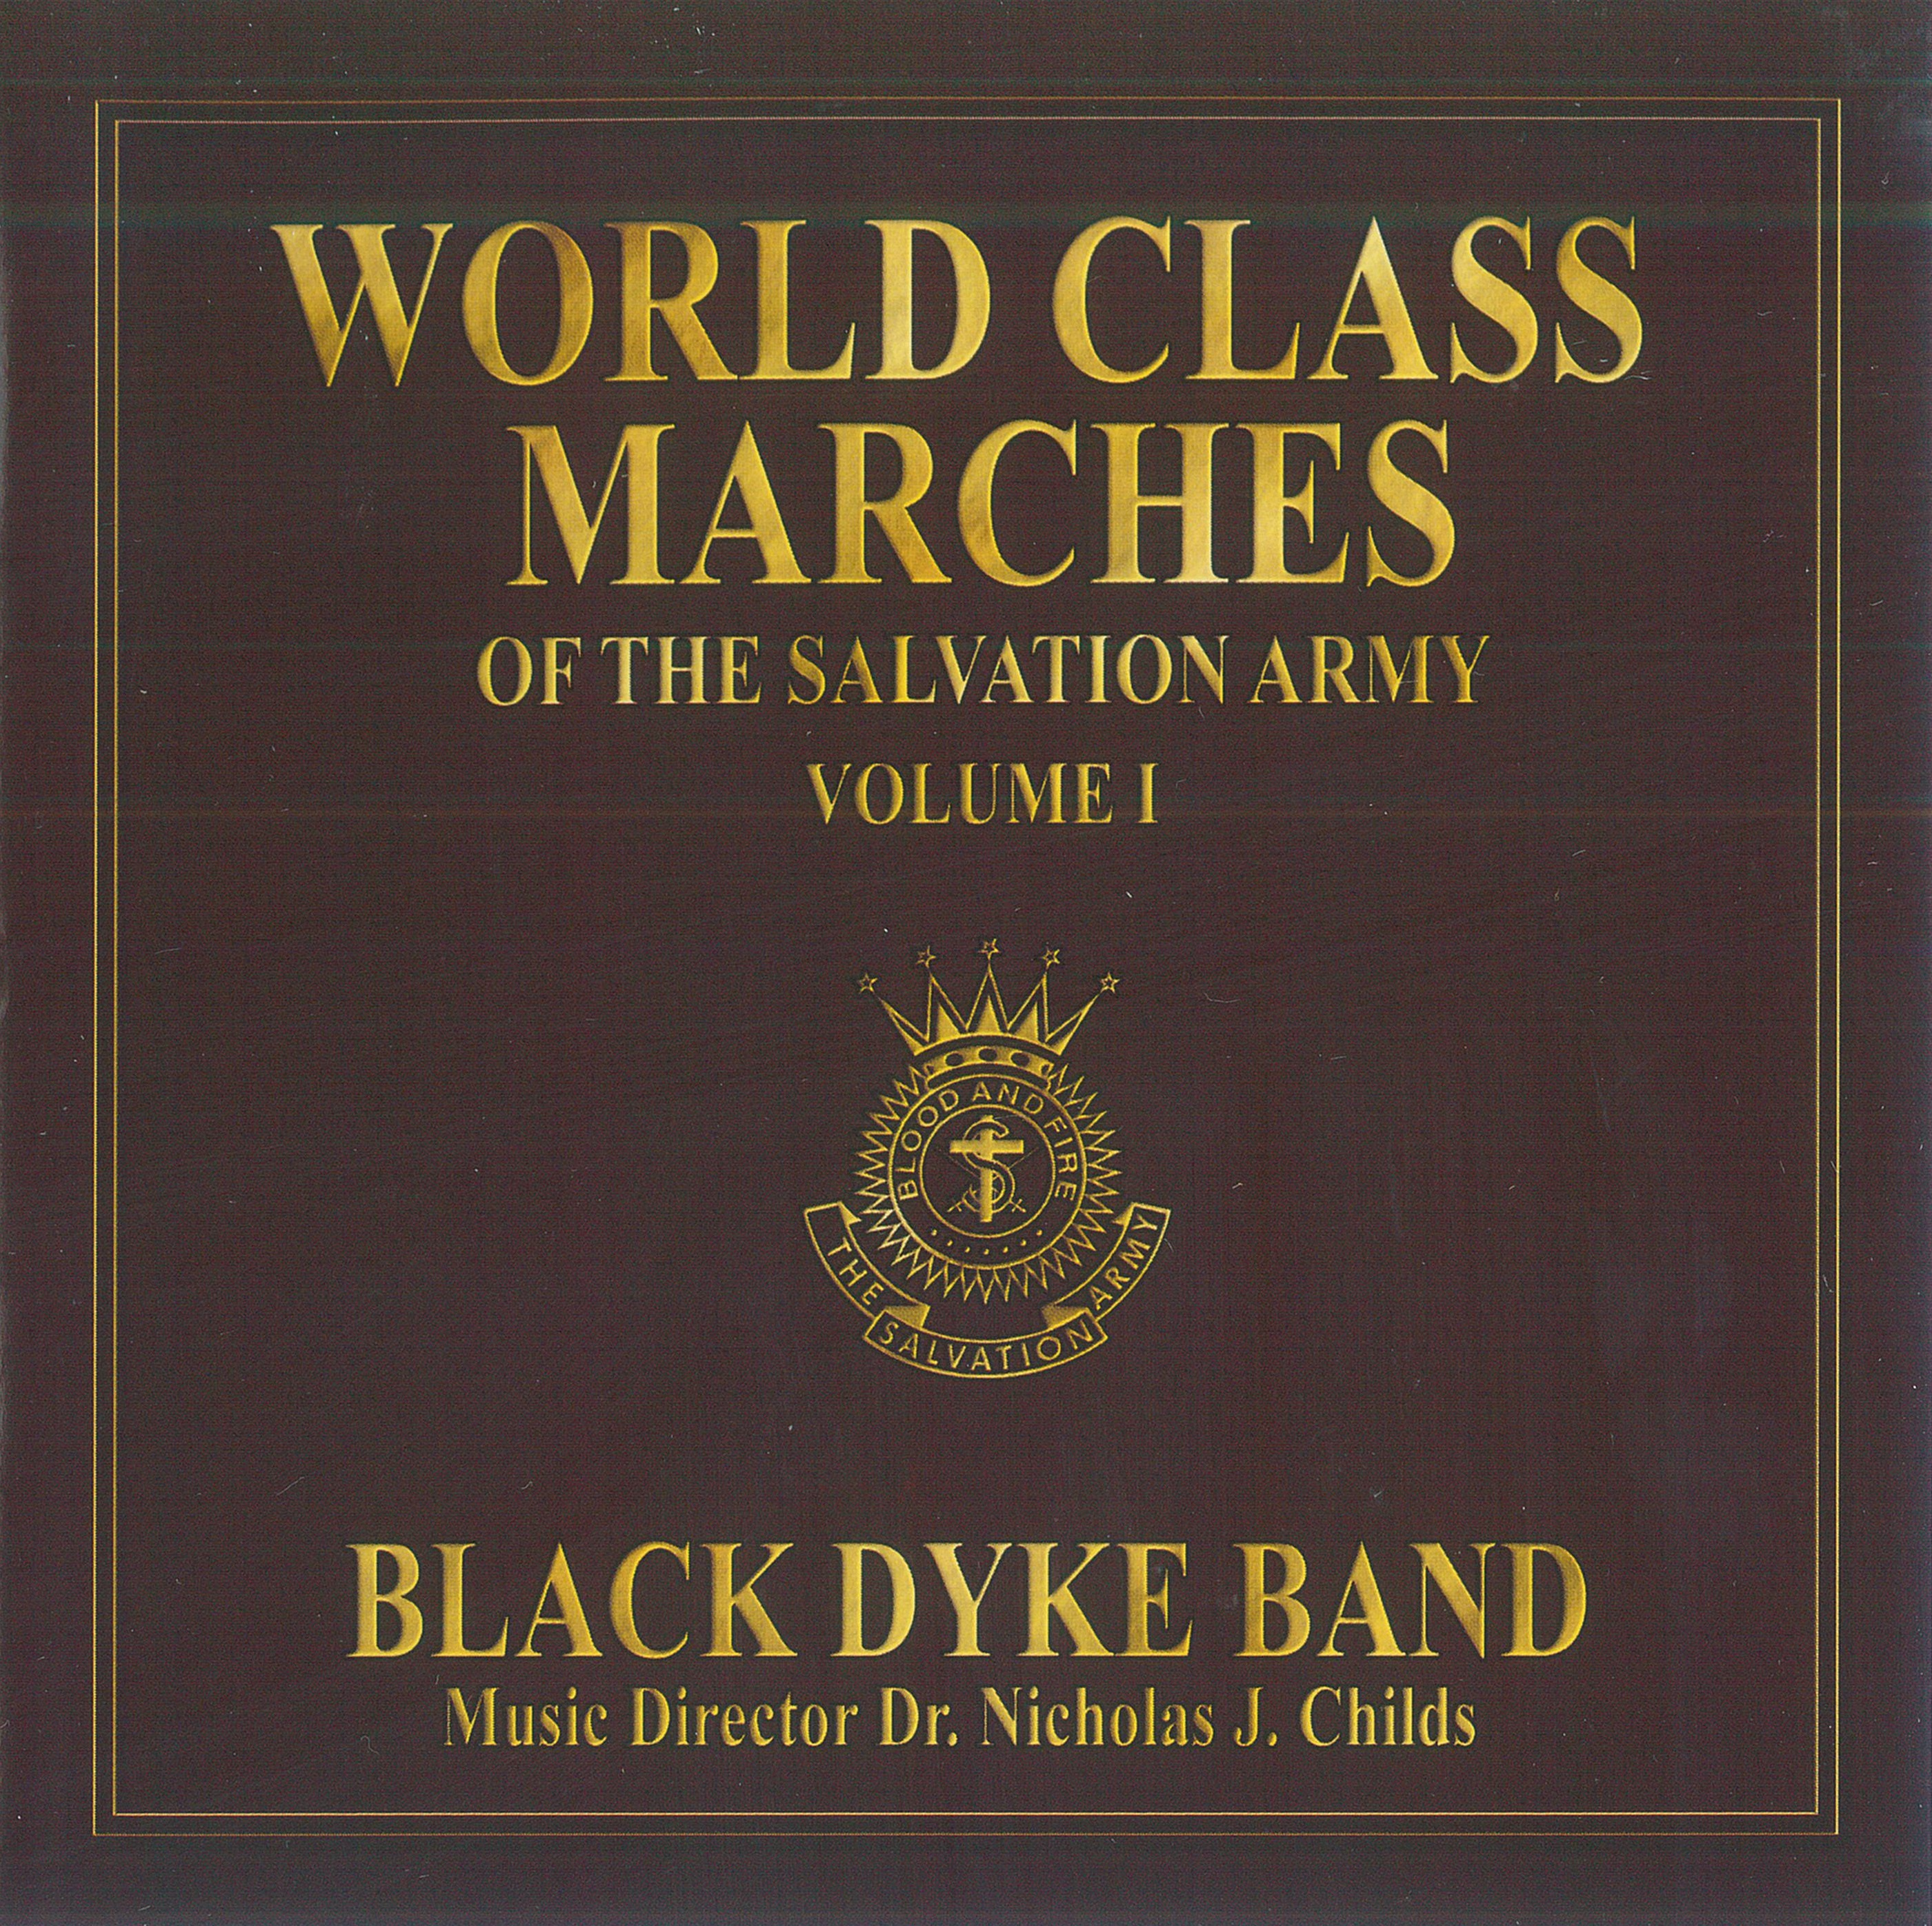 World Class Marches of The Salvation Army Volume I - Download